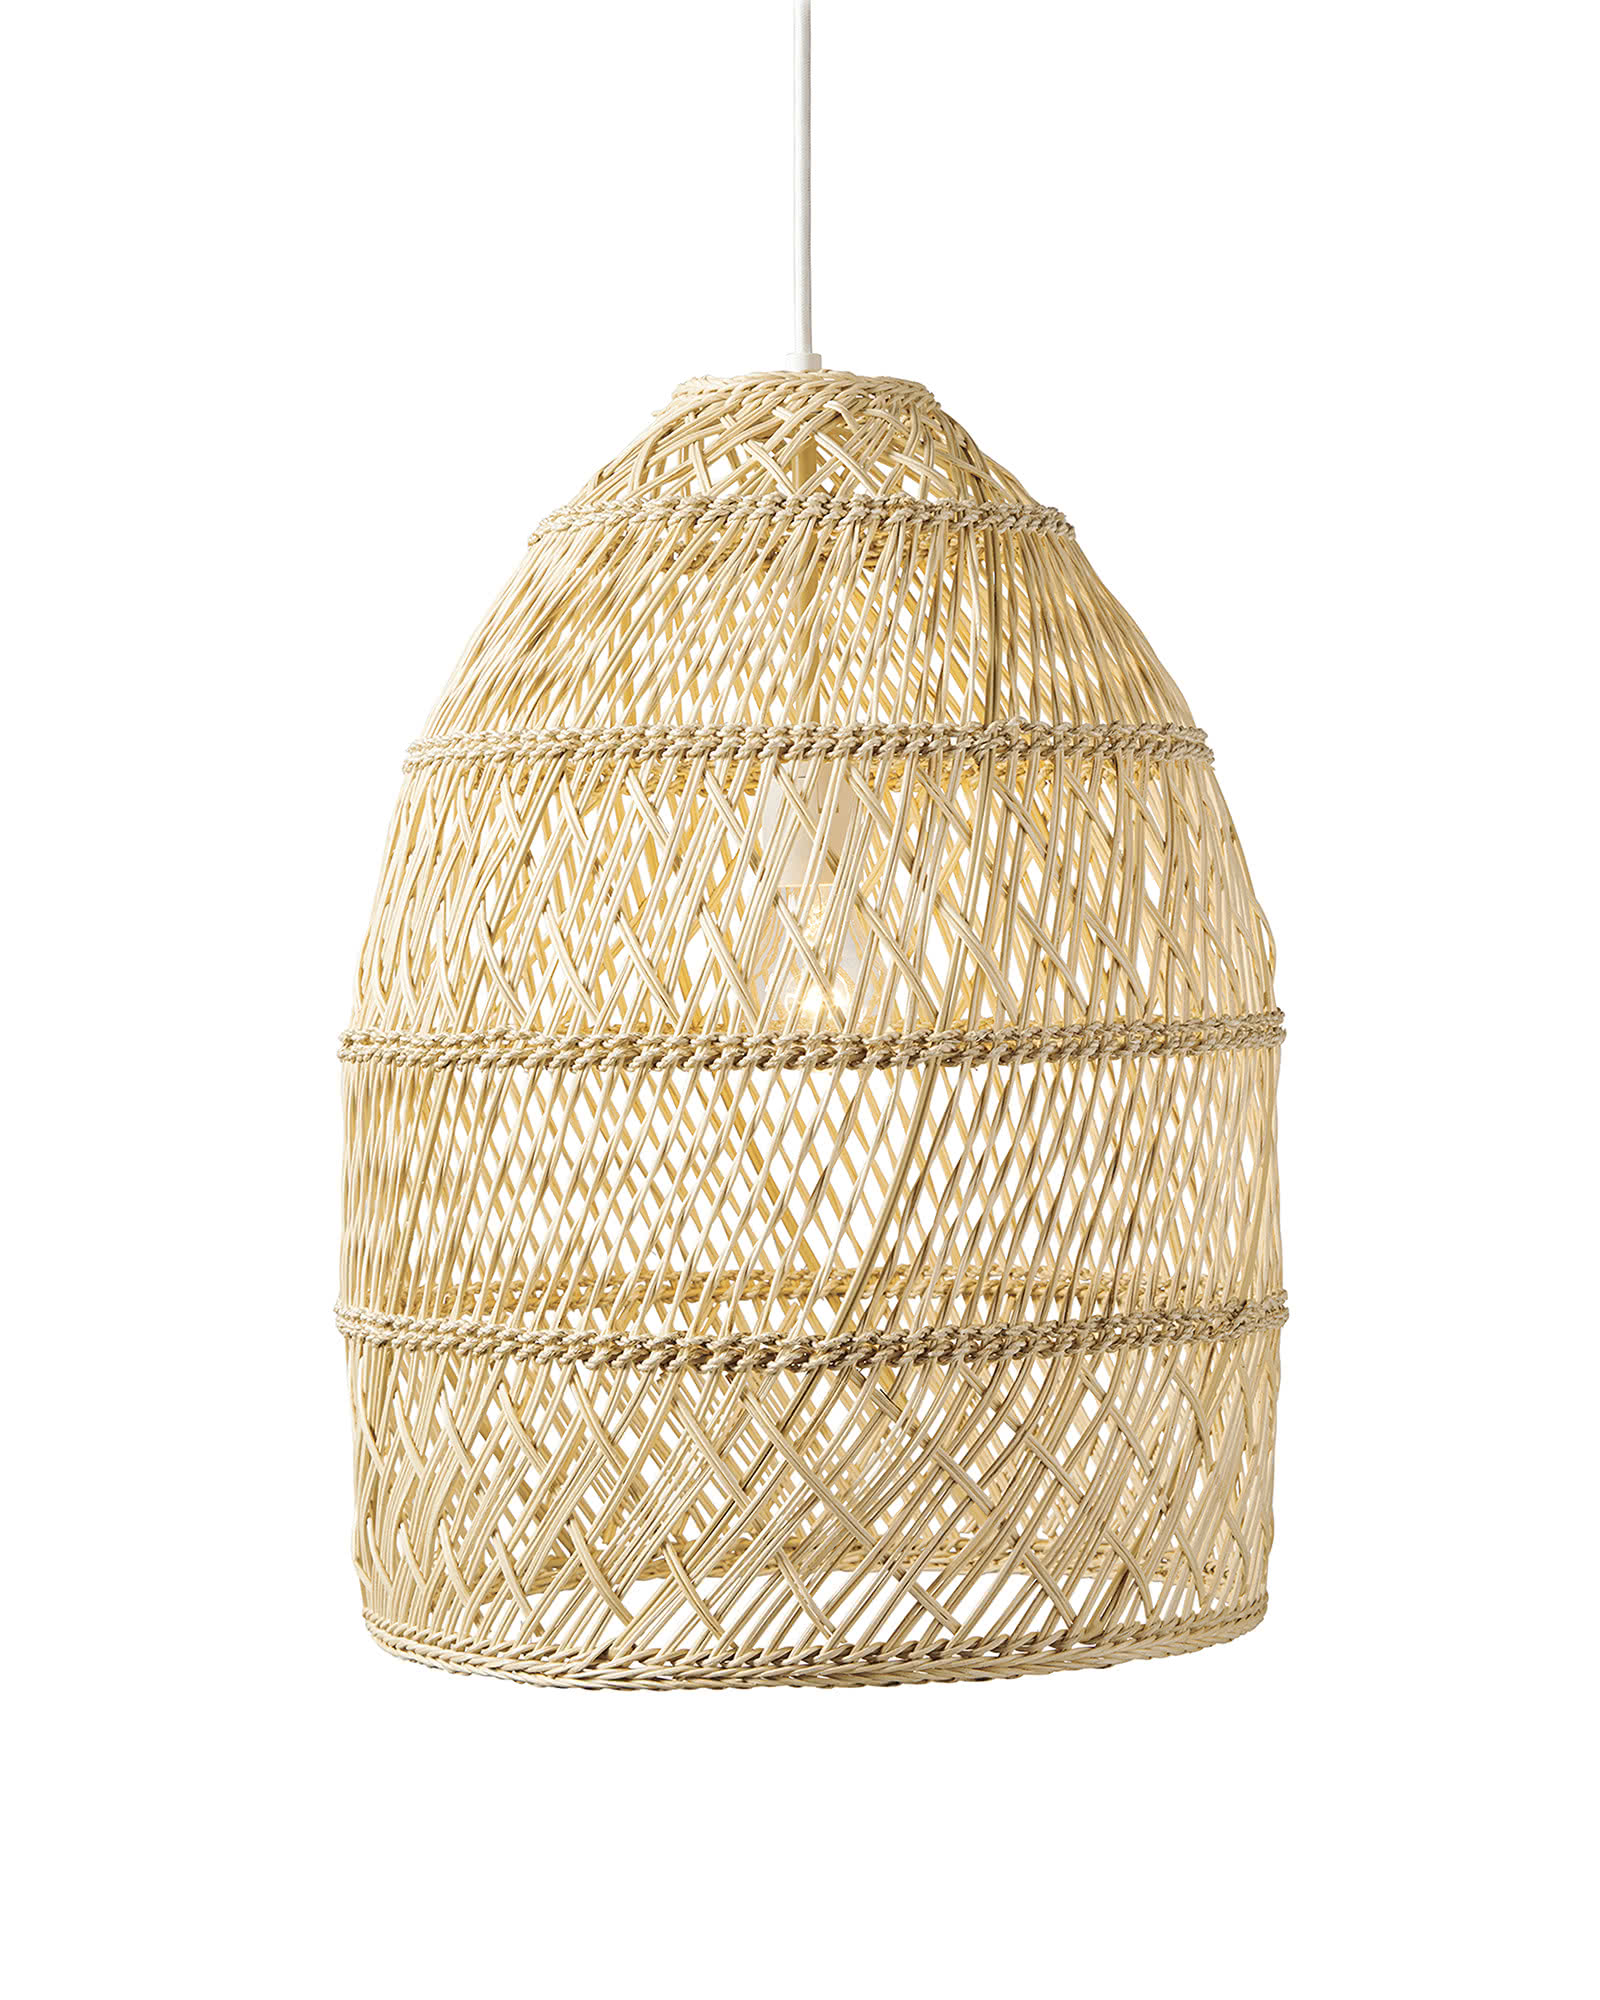 Woven pendant lights from Serena & Lily